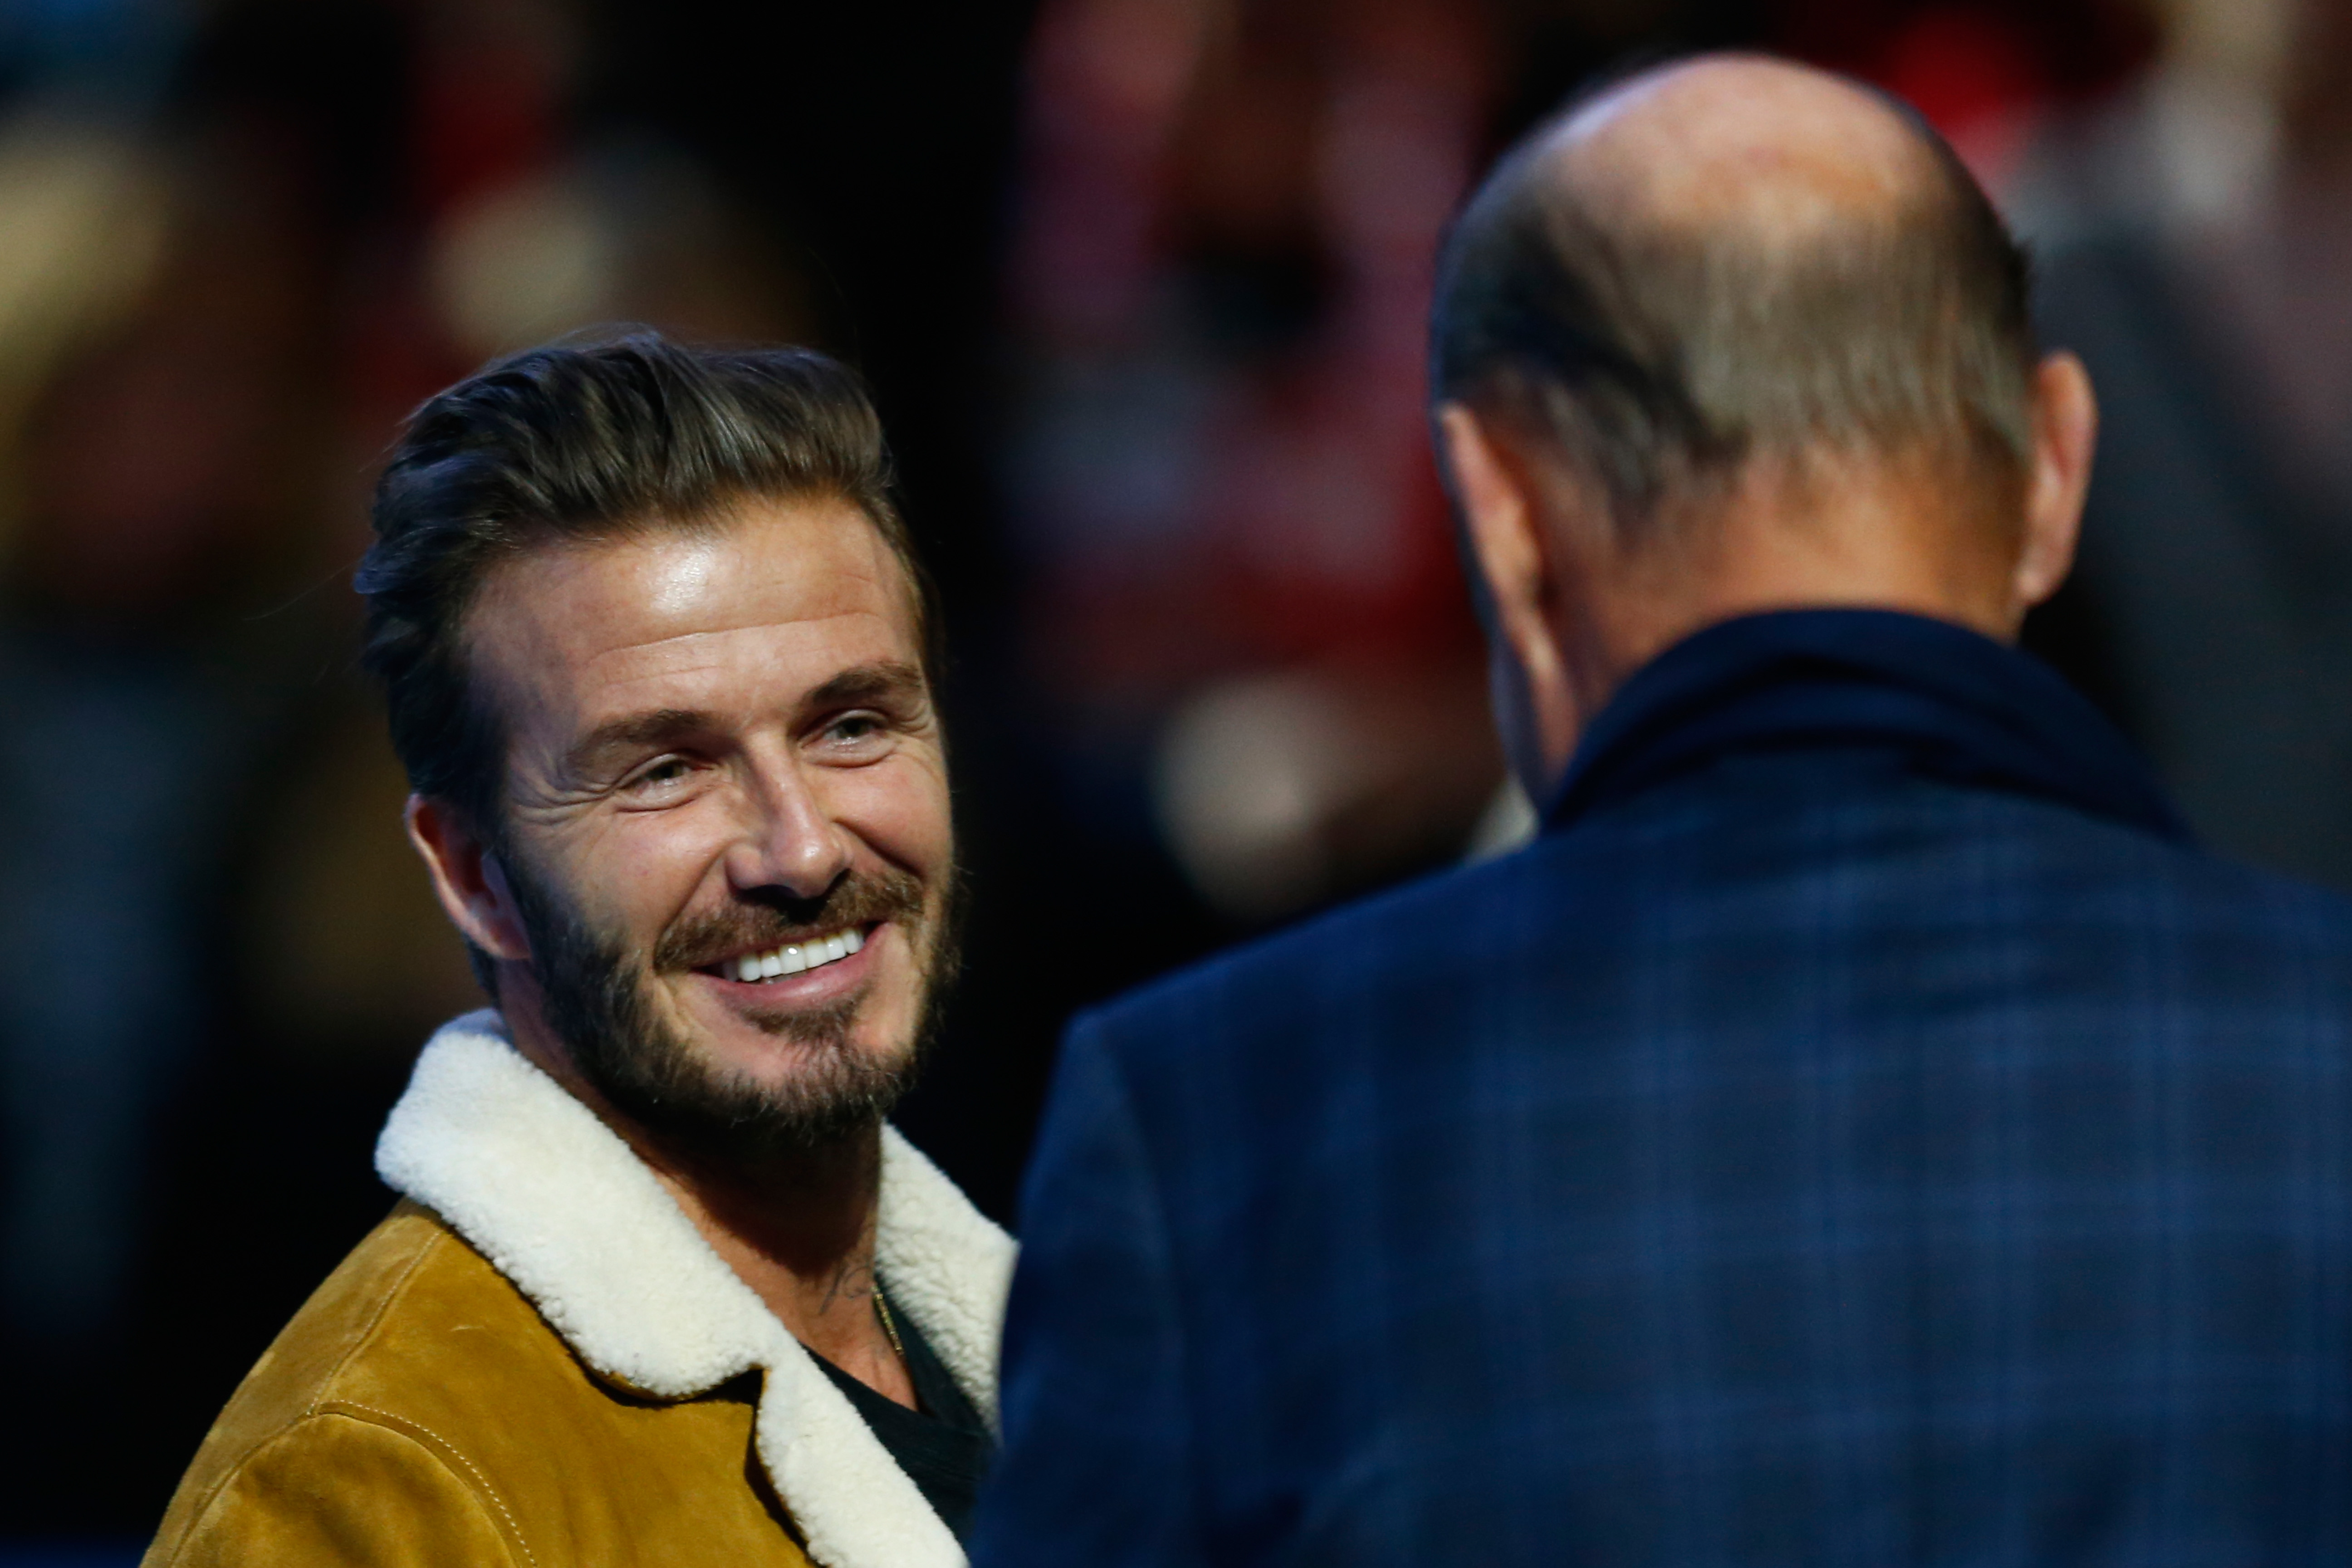 Miami FC: Why David Beckham will beat the odds